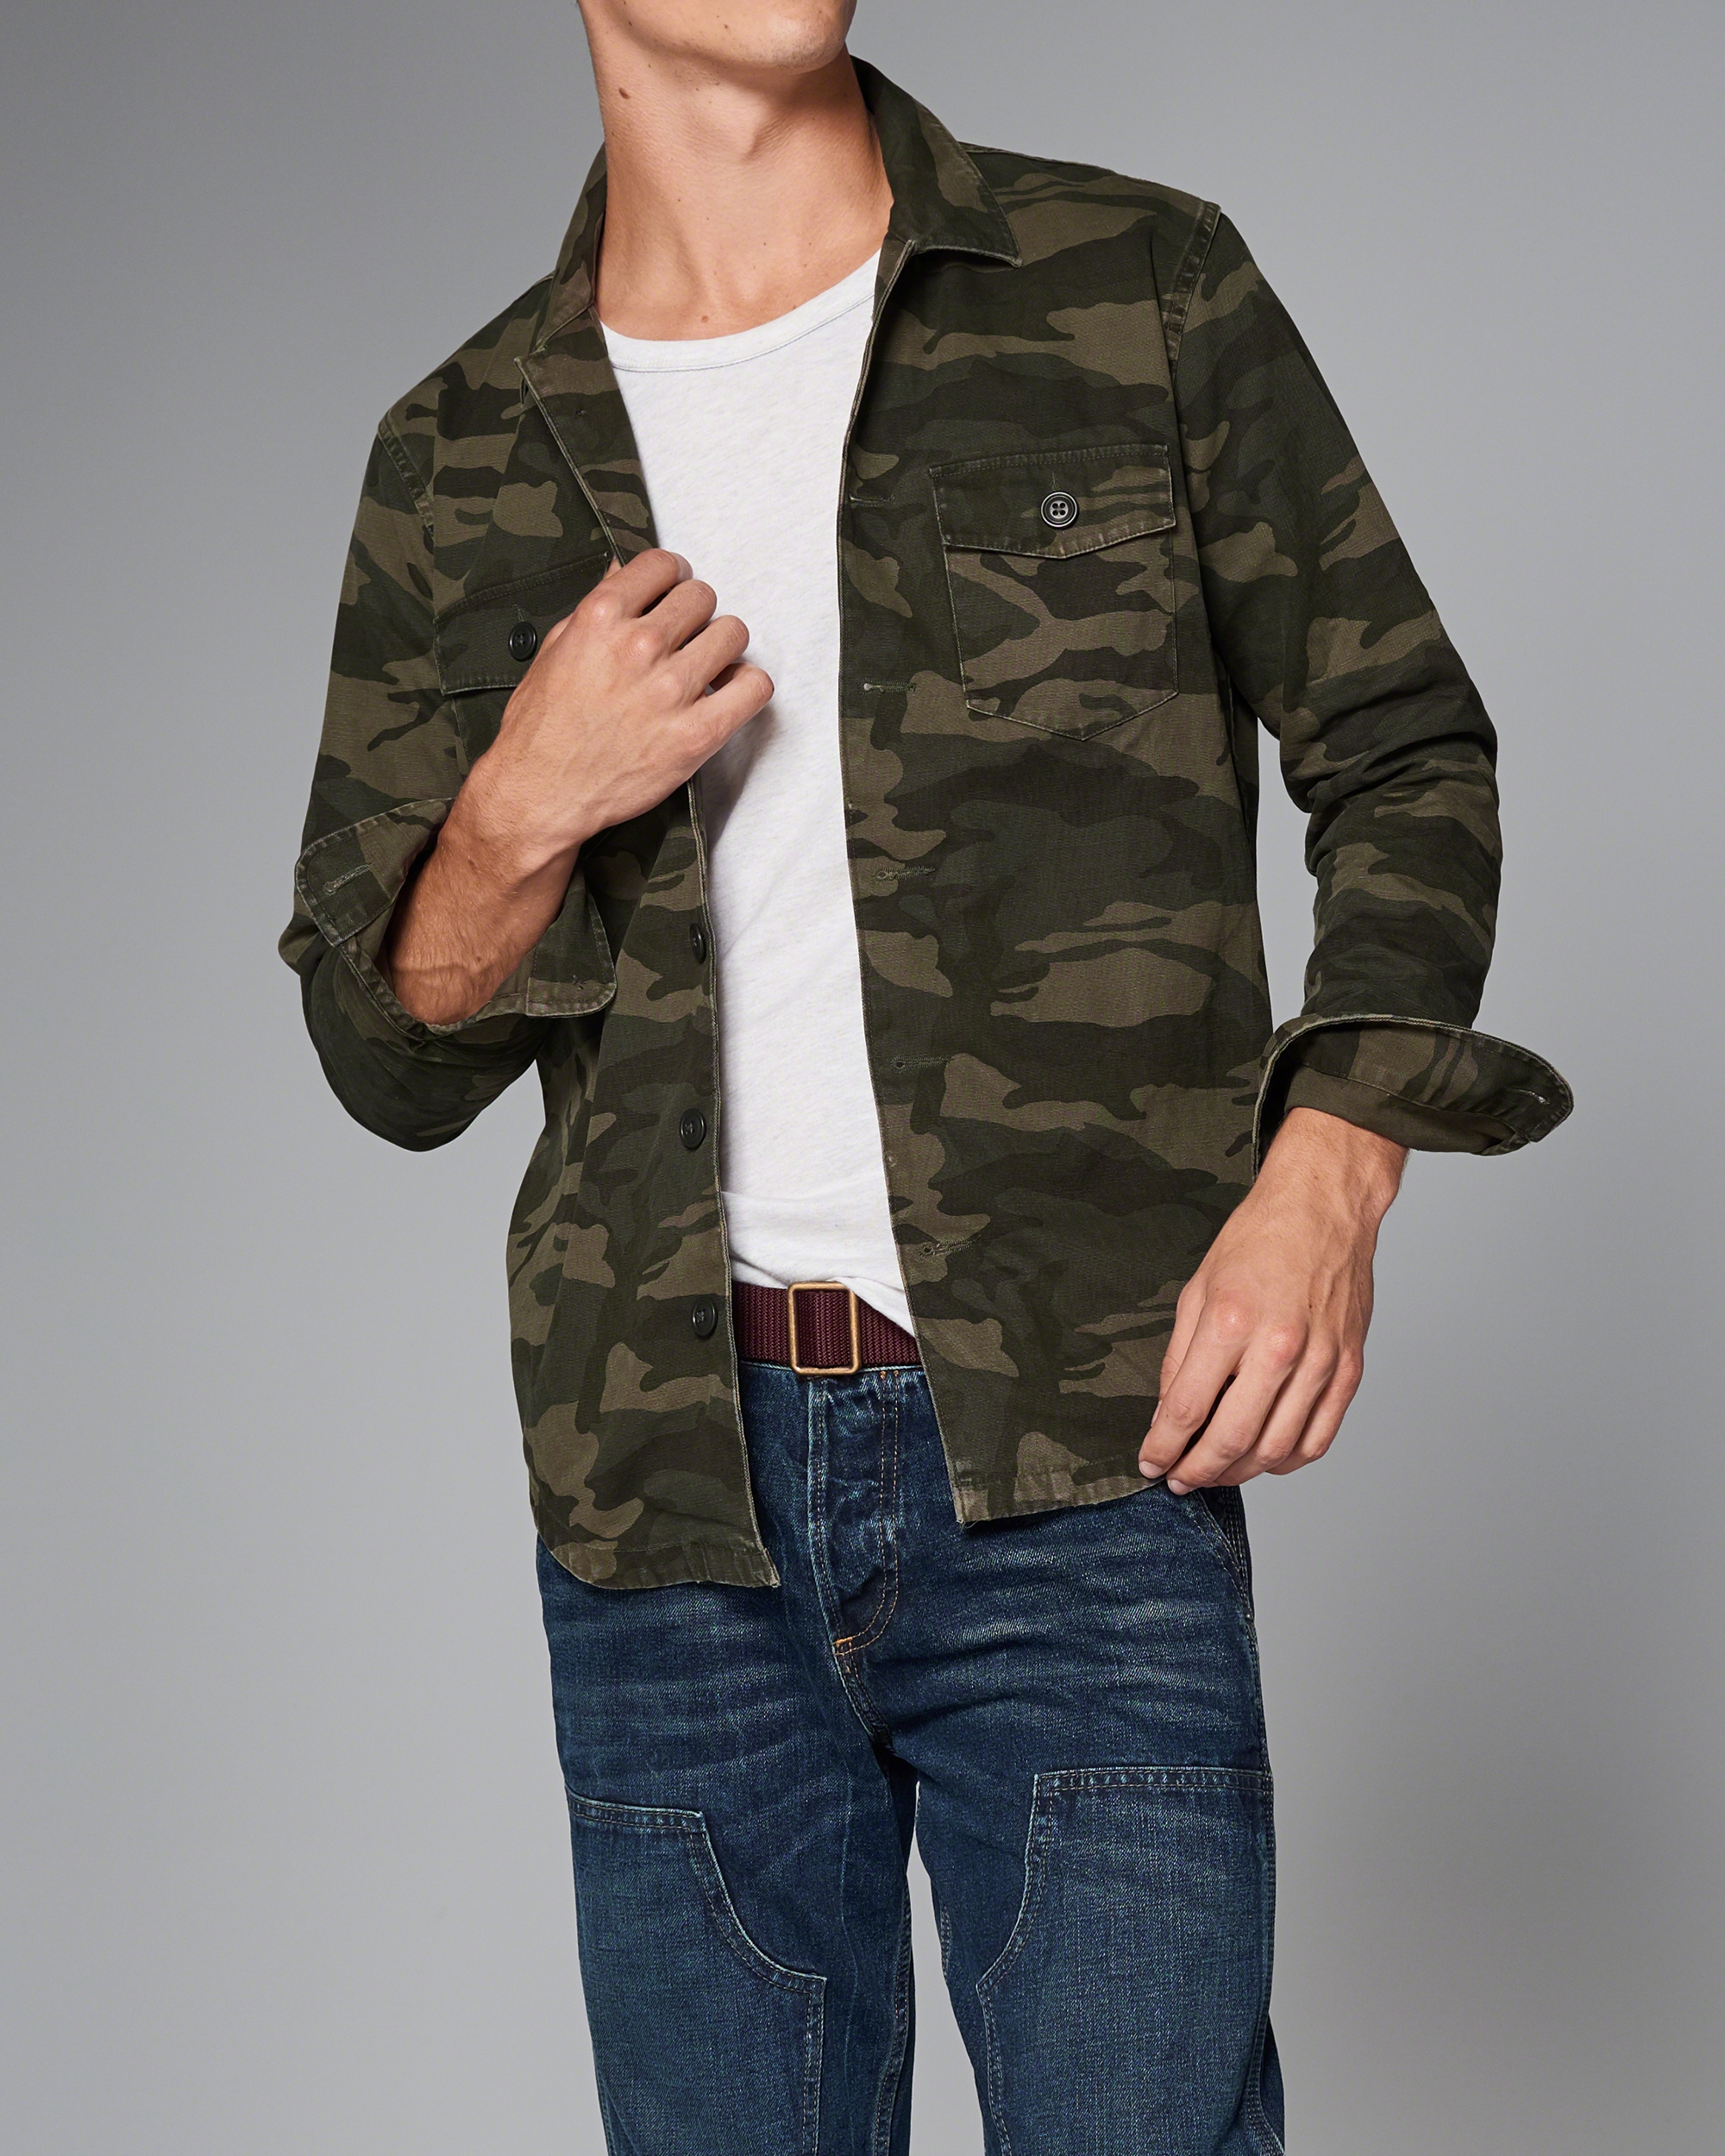 Abercrombie & Fitch Camo Military Shirt Jacket In Green